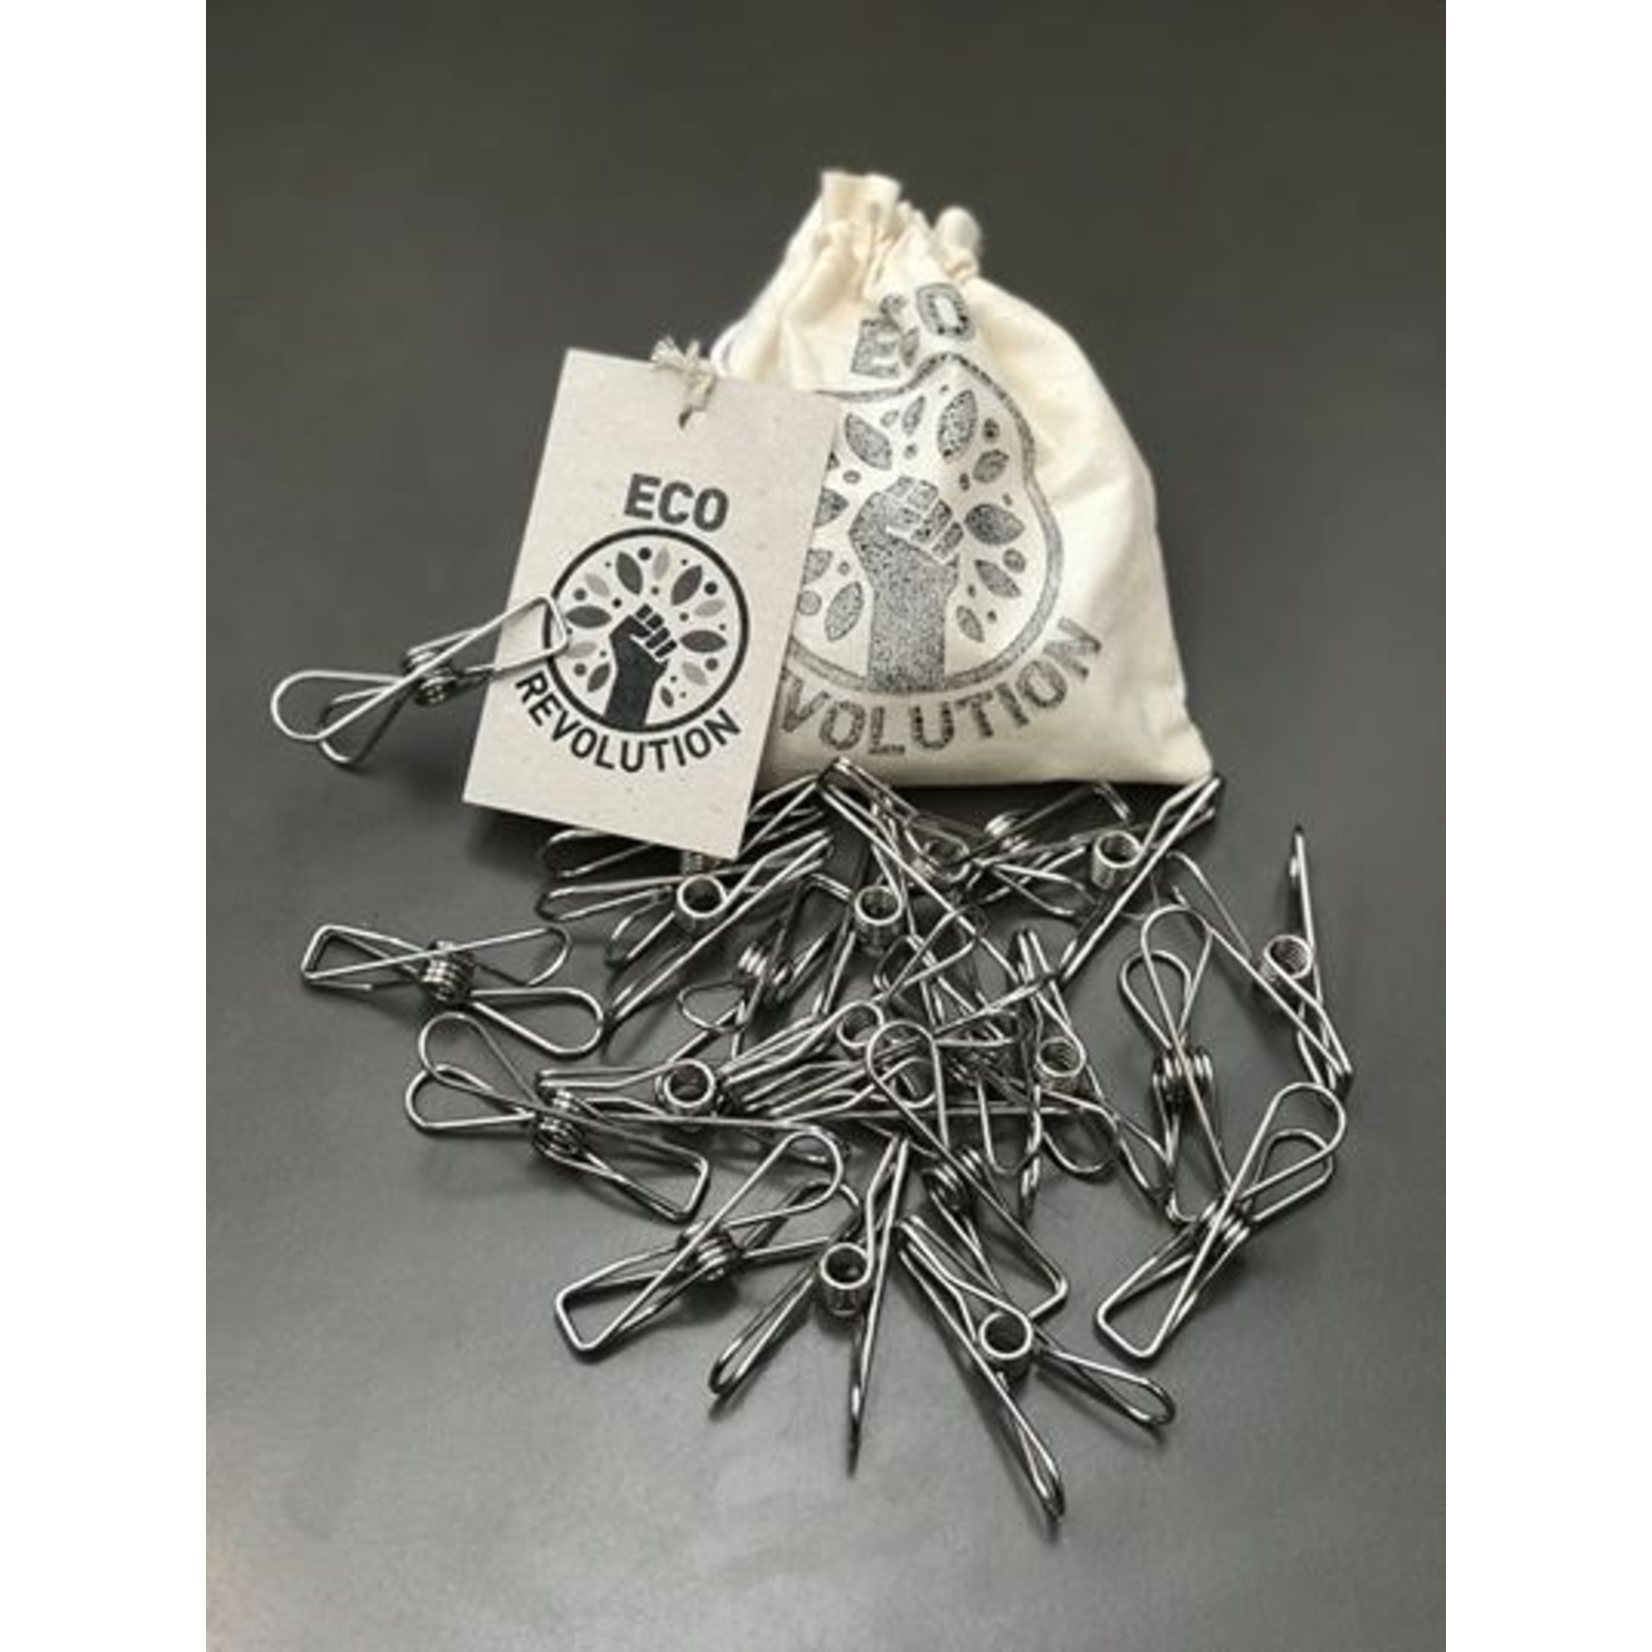 Eco Revolution Stainless Steel Pegs